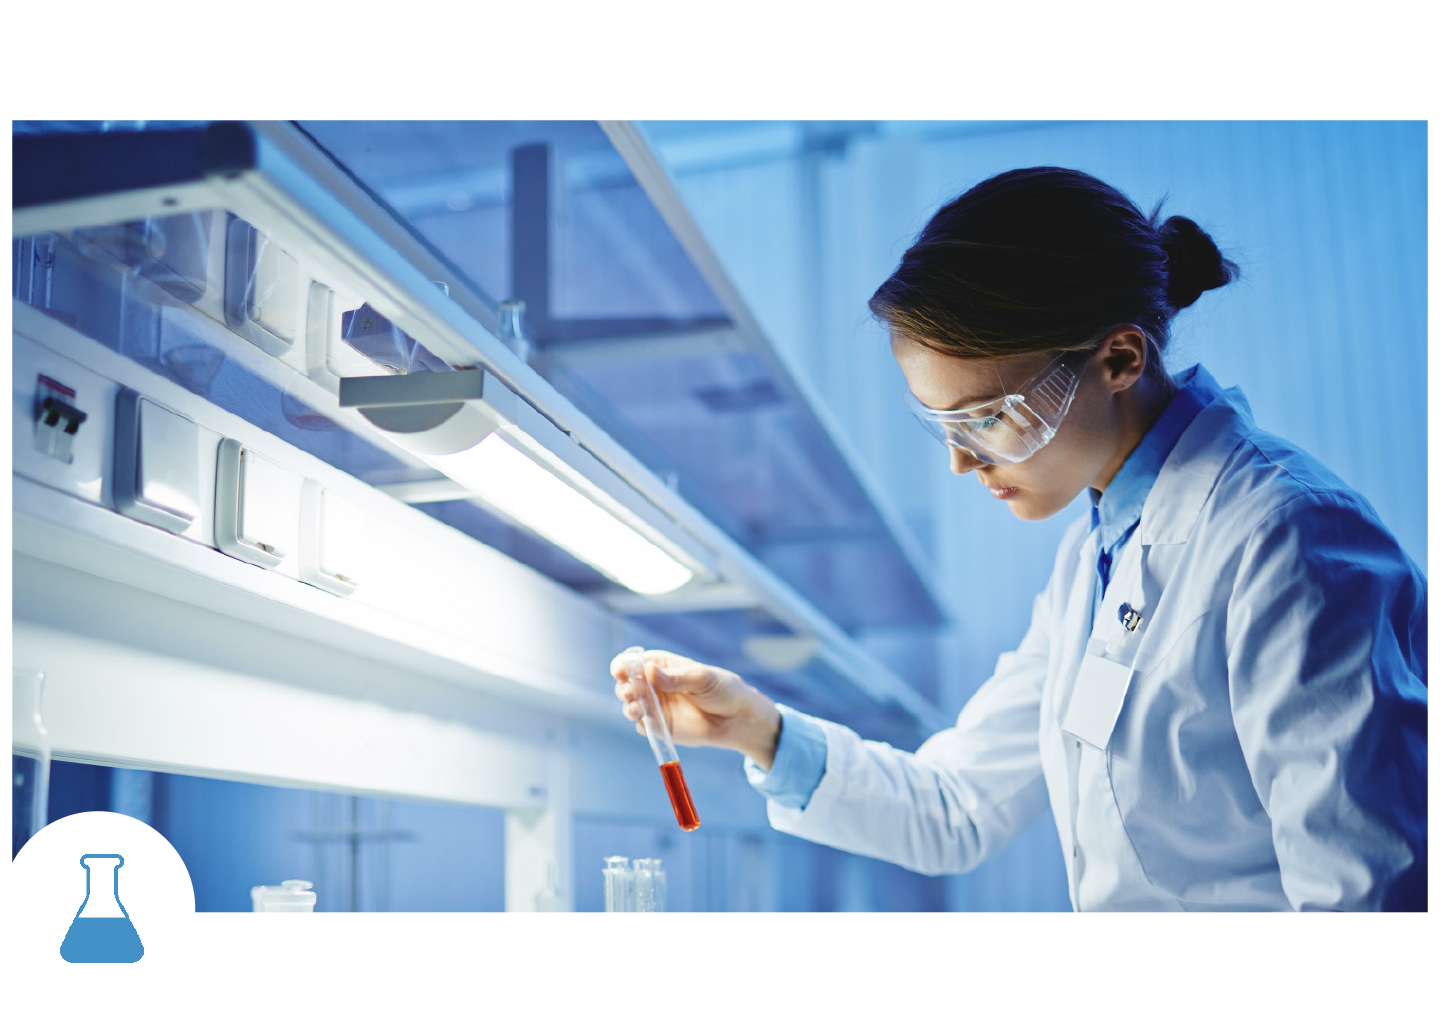 Life Science Worker Holding Test Tube in Lab